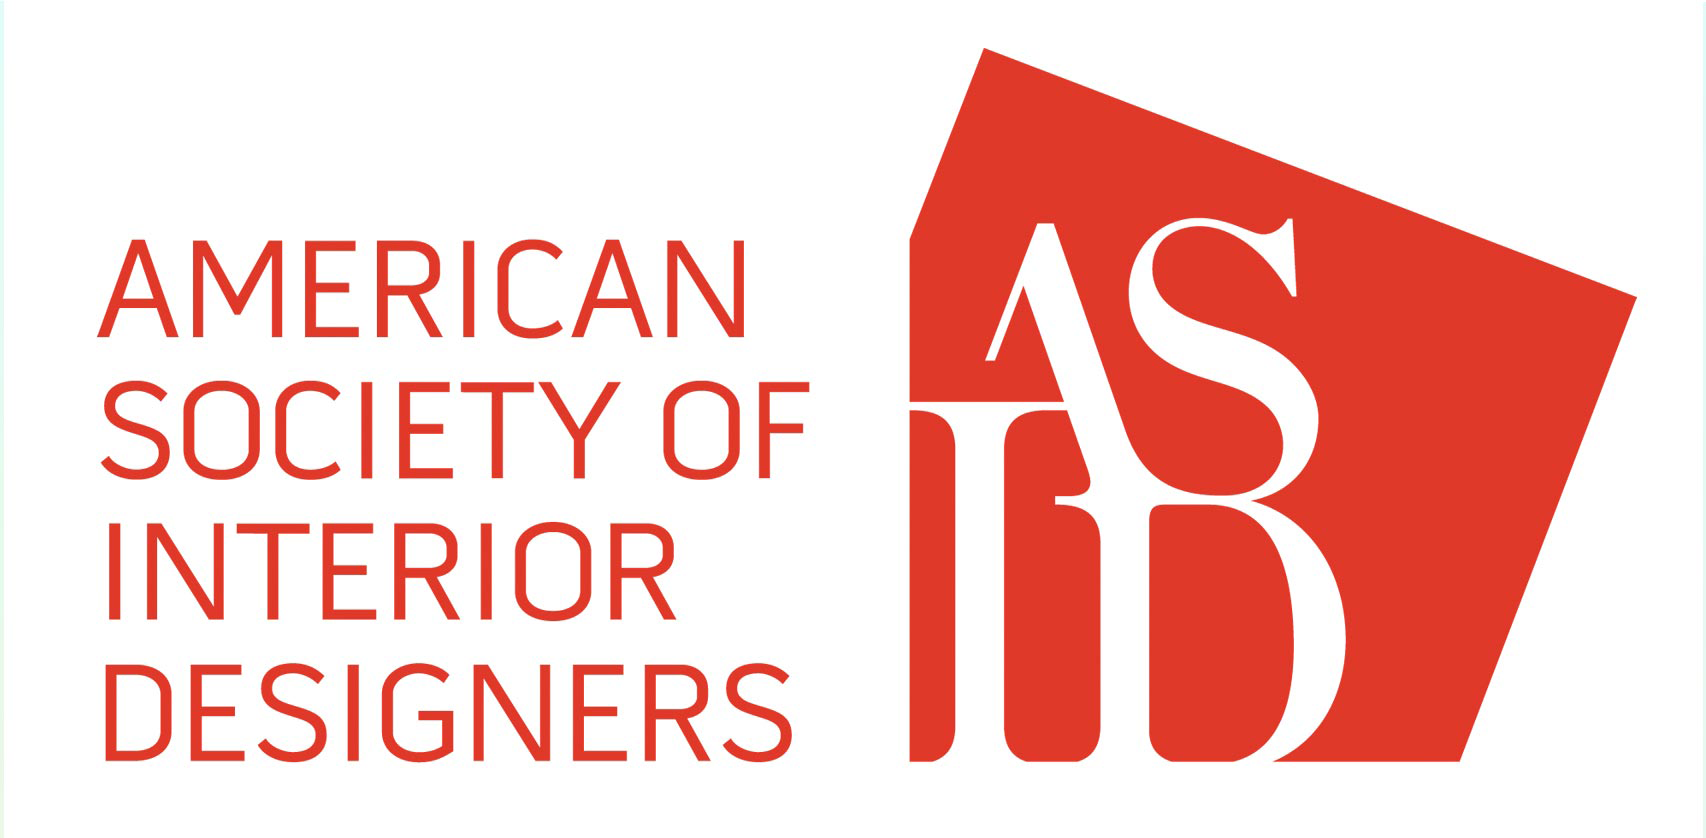 Did You Know That We Are Members Of The American Society